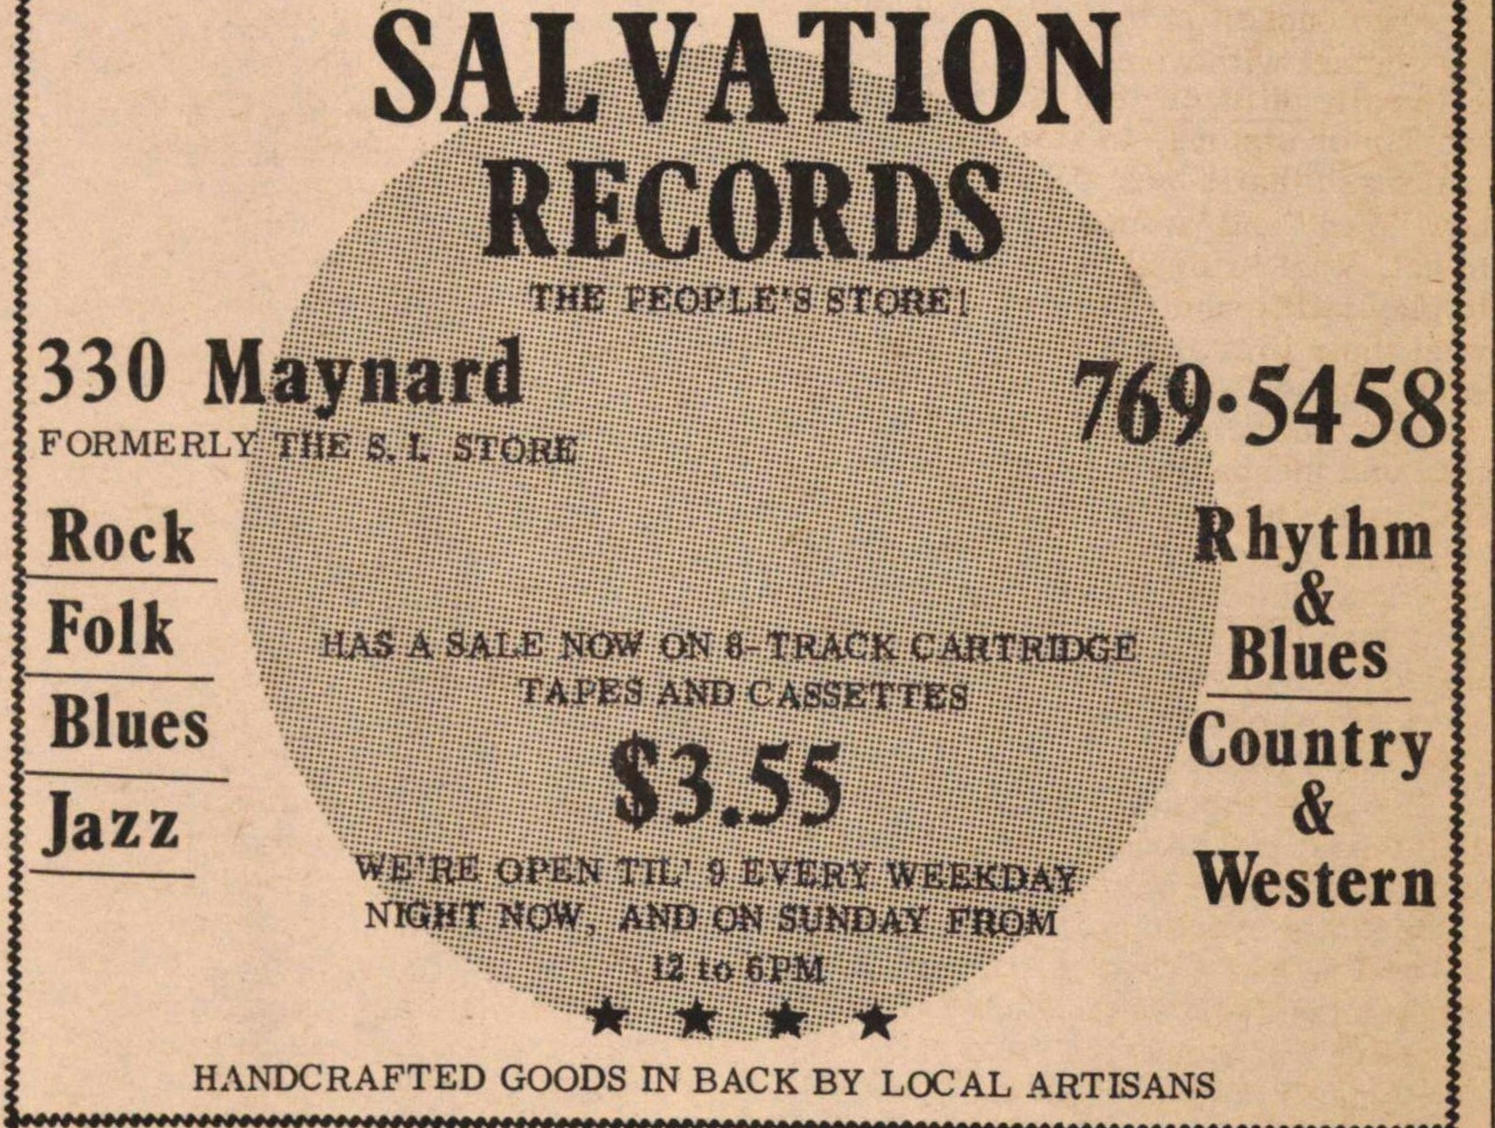 Salvation Records image